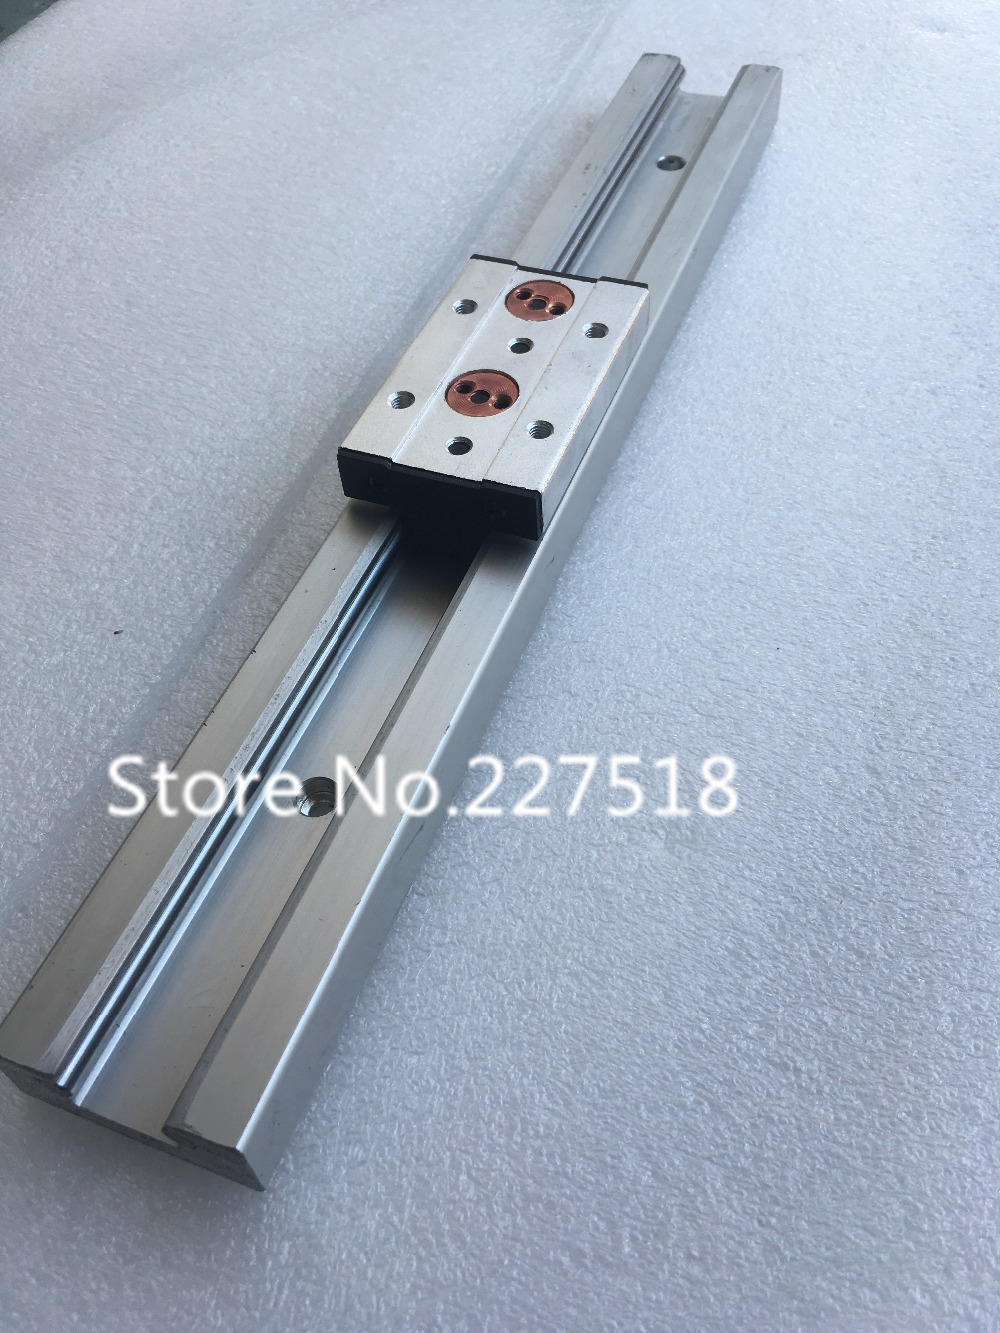 1pcs Double axis roller linear guide SGR20N L300mm +1pcs SGB20UU block multi axis core linear Motion slide rail auminum guide 682040 001 682040 501 fit for hp pavilion dv7t 7000 dv7 dv7 7000 notebook motherboard hm77 650m 2g